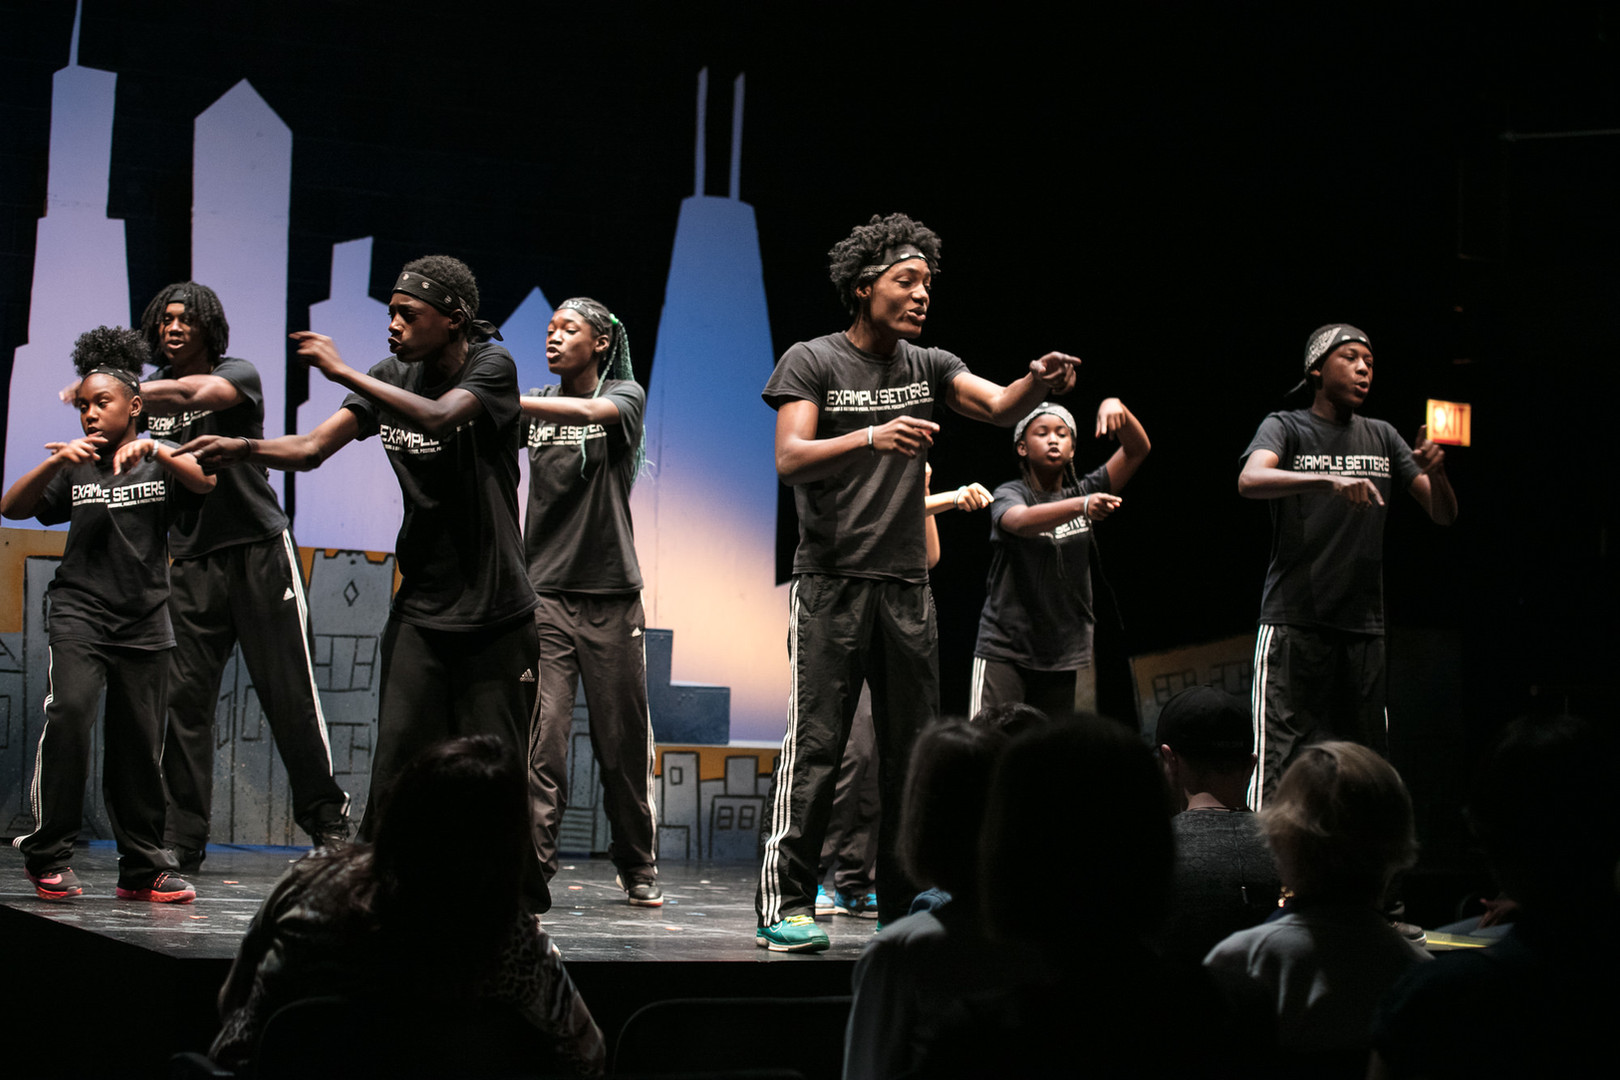 Collaboraction's Teen Peacemaker Ensemble in Conflict  (Photo credit: Joel Maisonet)